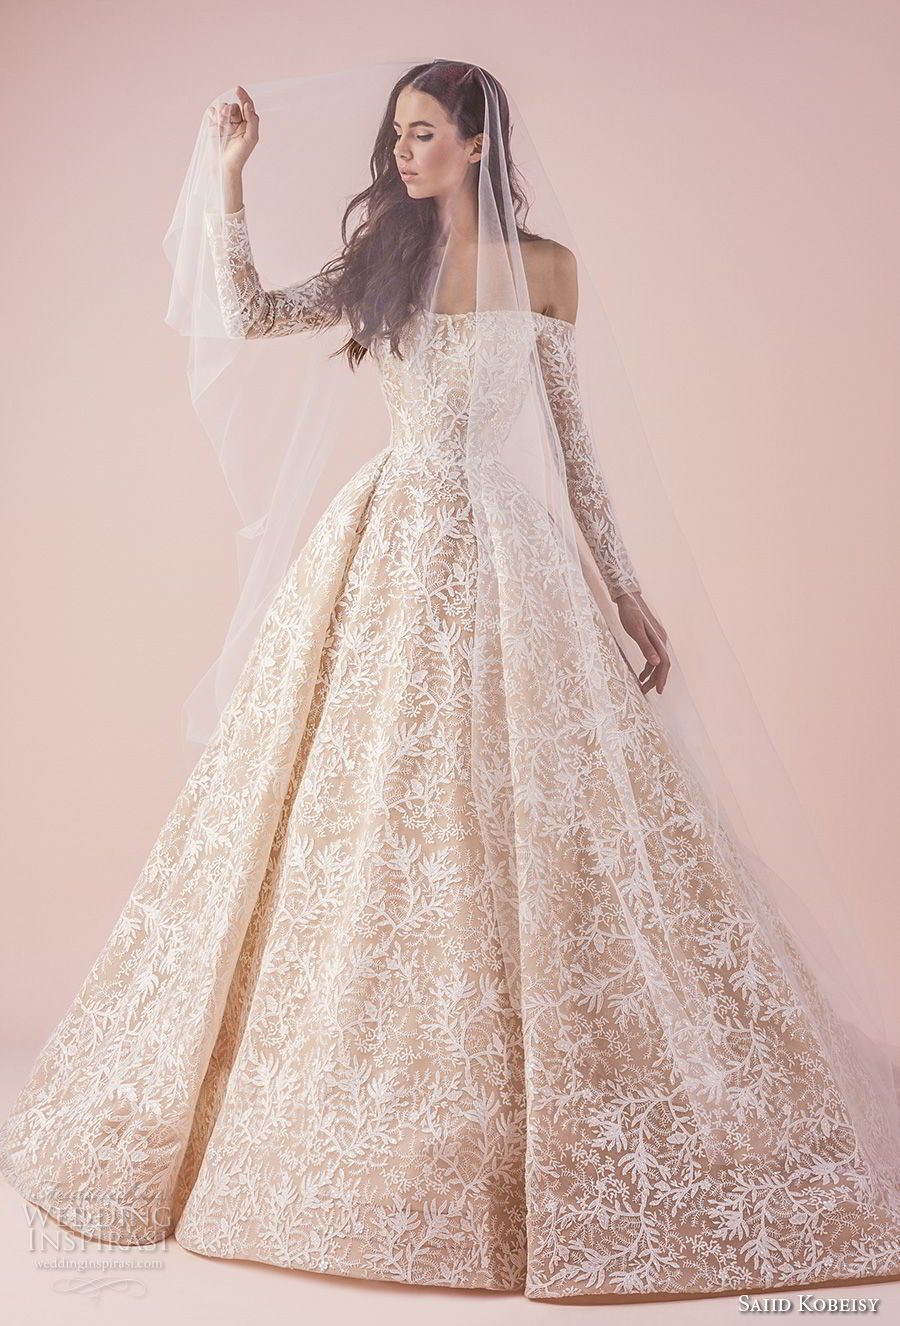 Replica Wedding Dresses From The Usa Tulle Wedding Gown Ball Gown Wedding Dress Ball Gowns Wedding